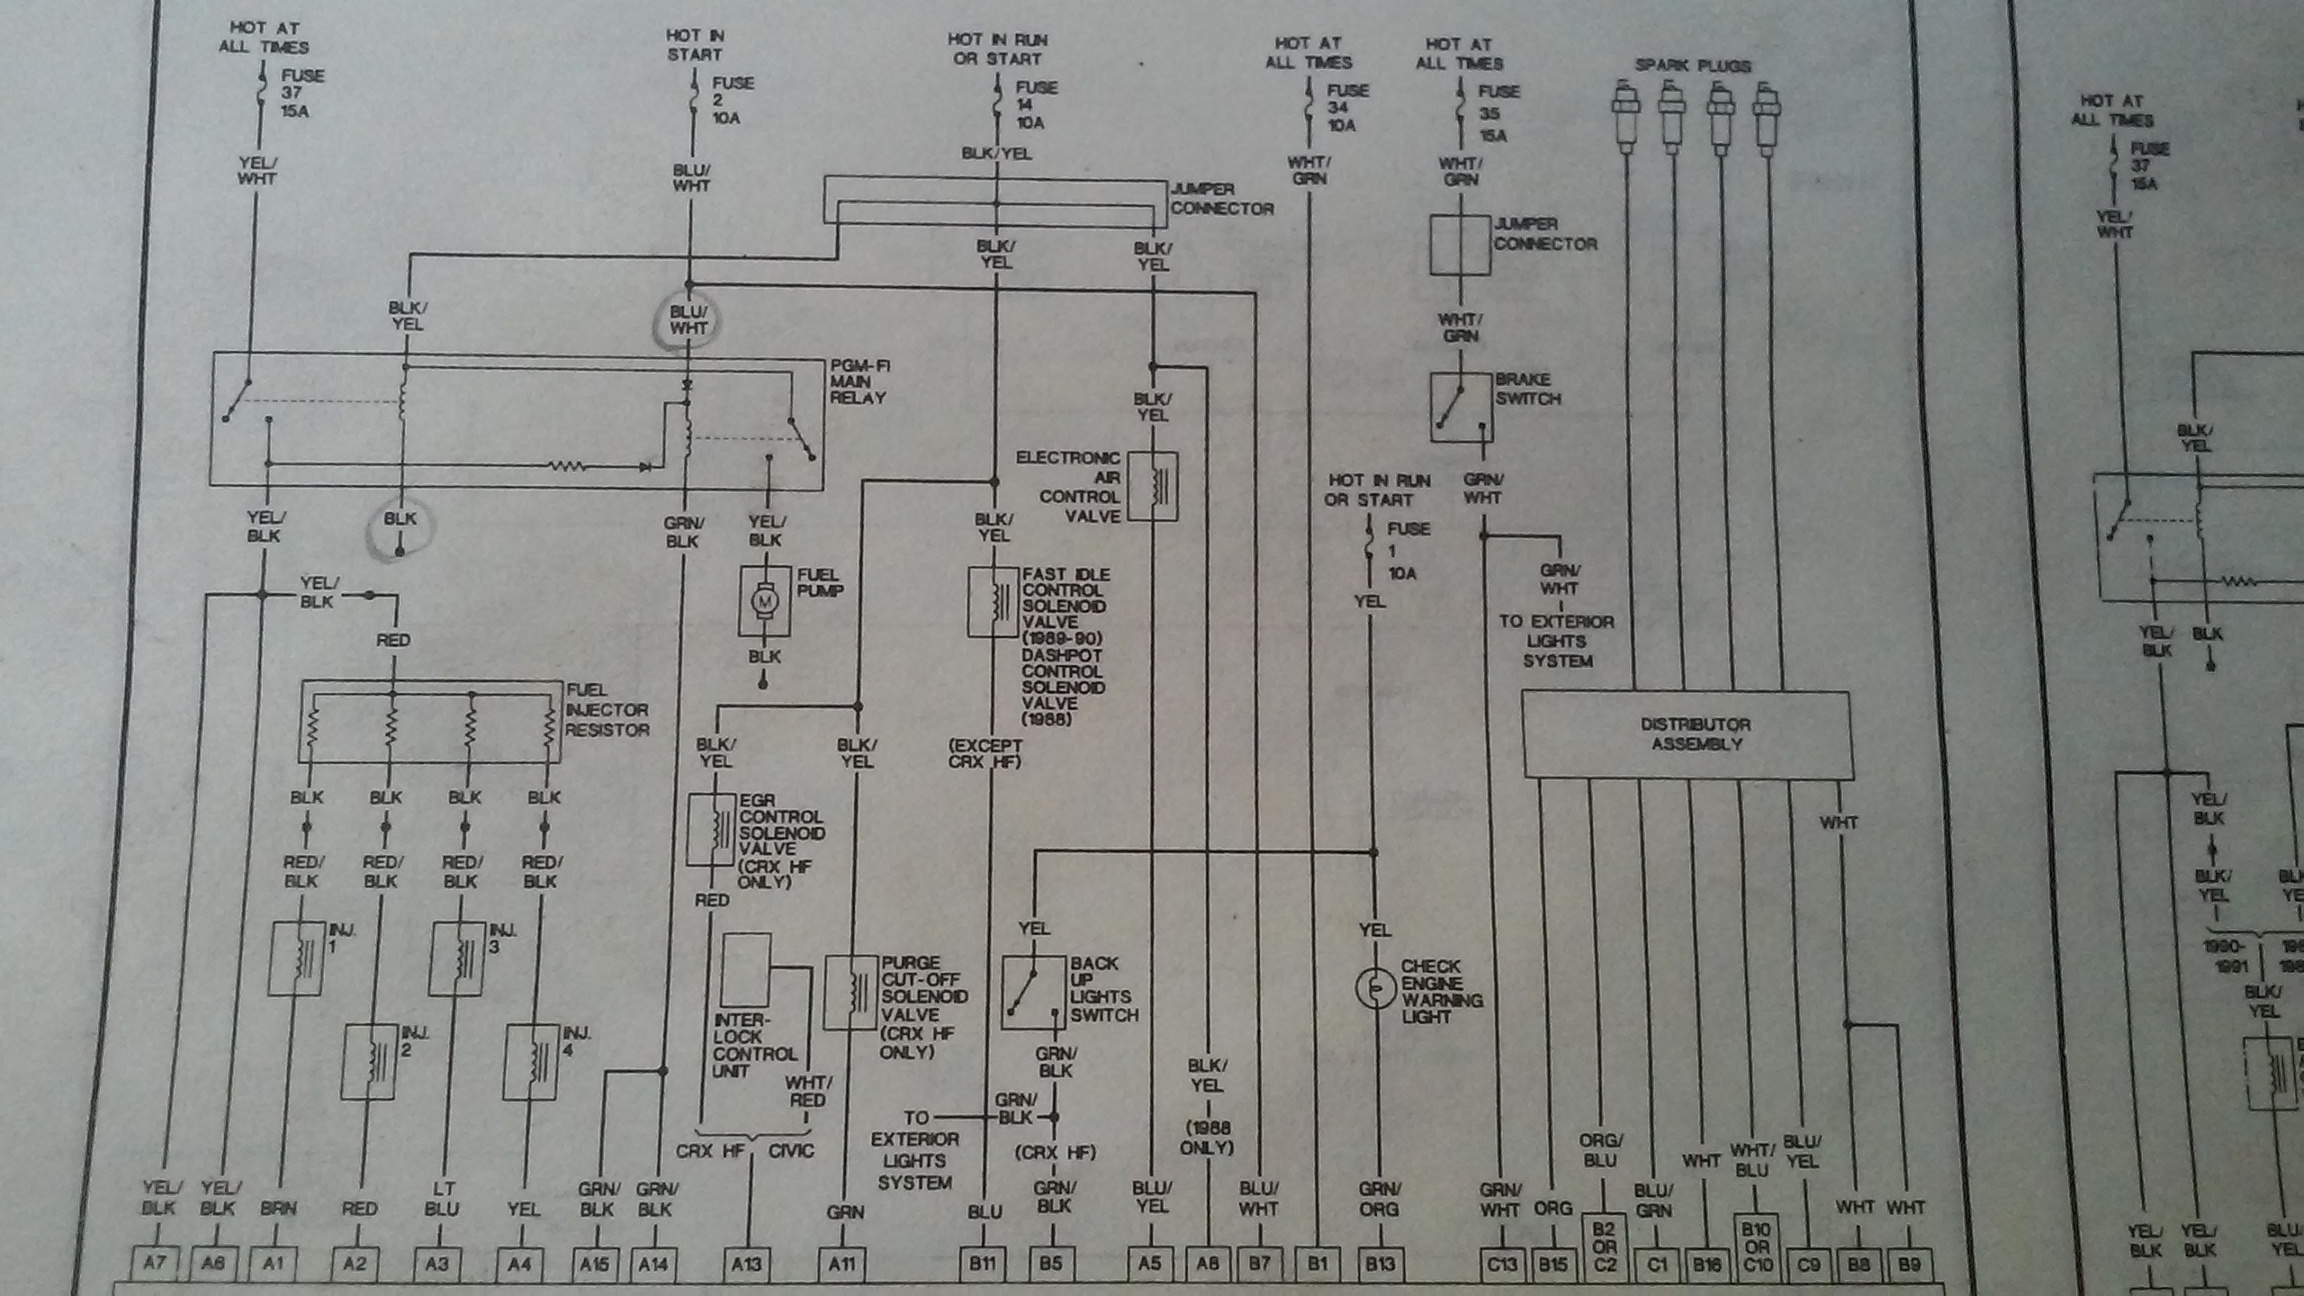 Honda Civic Wiring Diagram Also 1998 Honda Civic Distributor Diagram